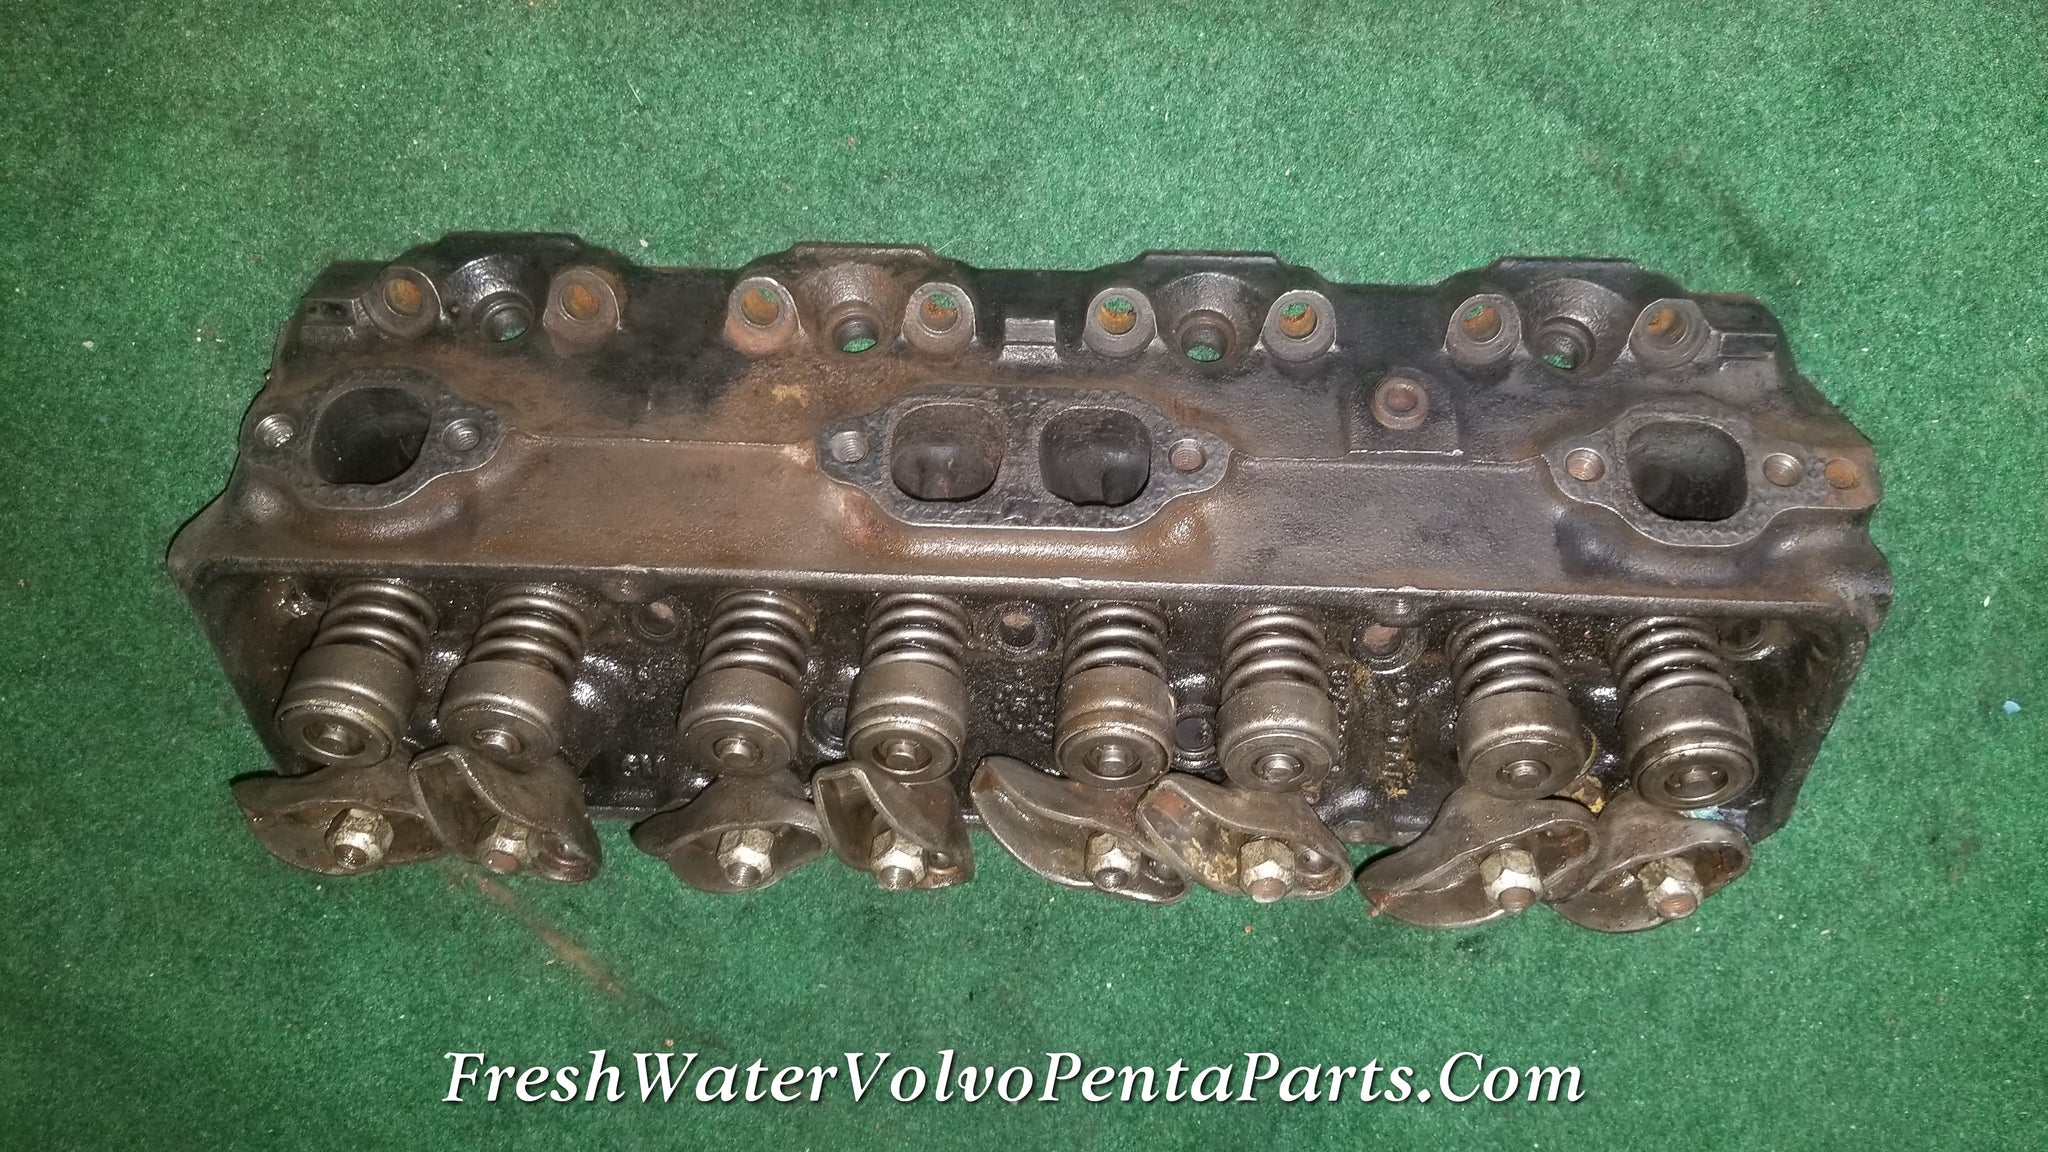 Volvo Penta Engines and Engine Components ... on